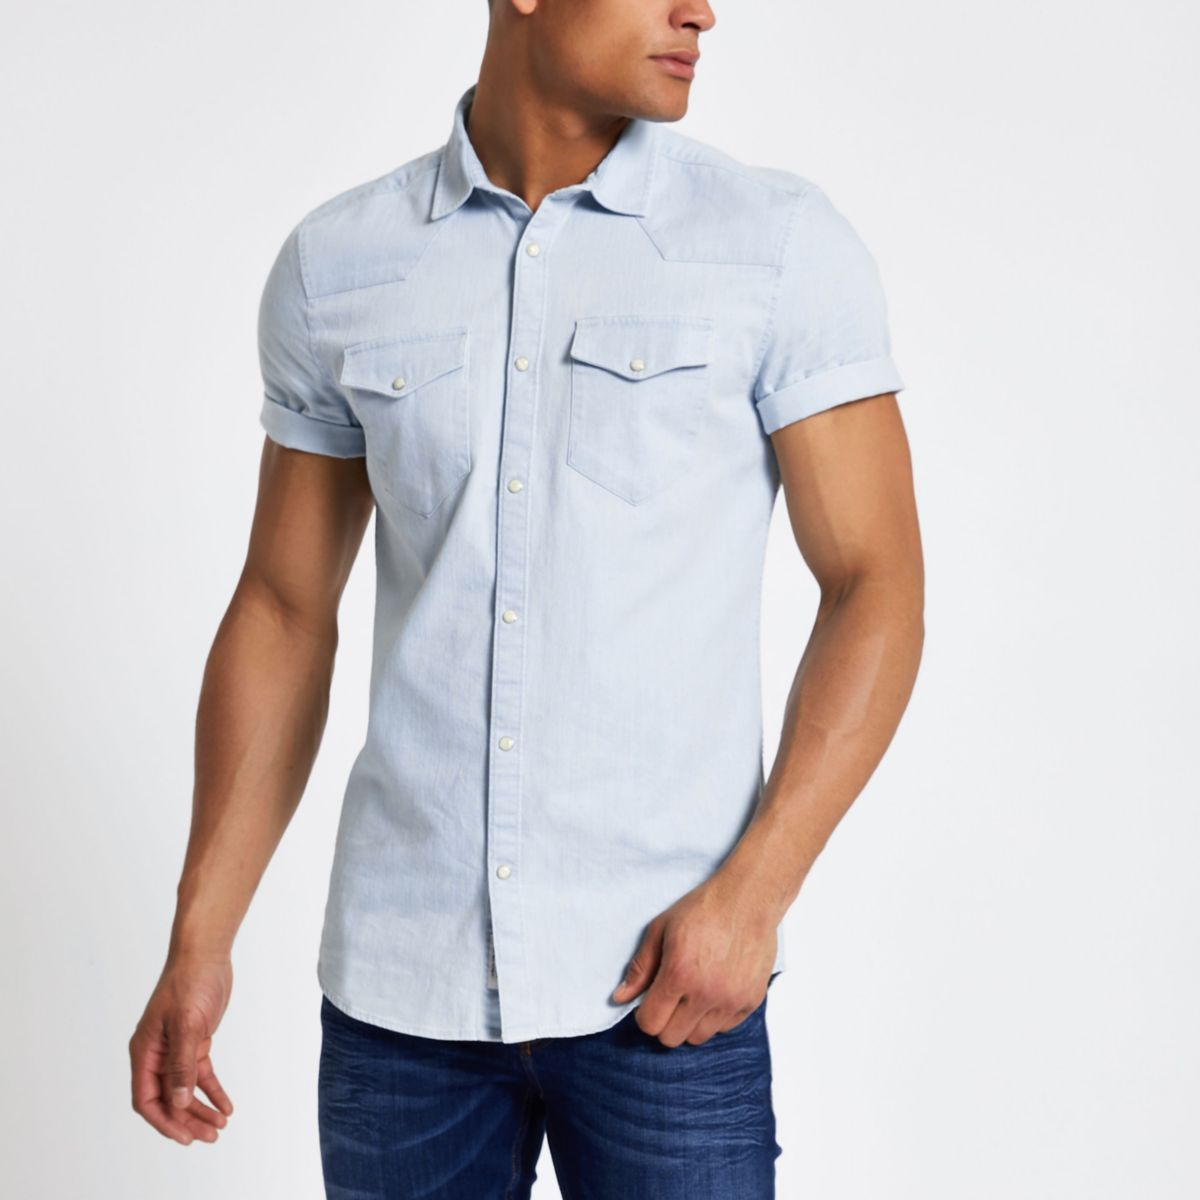 Blue shirt western fit slim style denim rWfFrUc